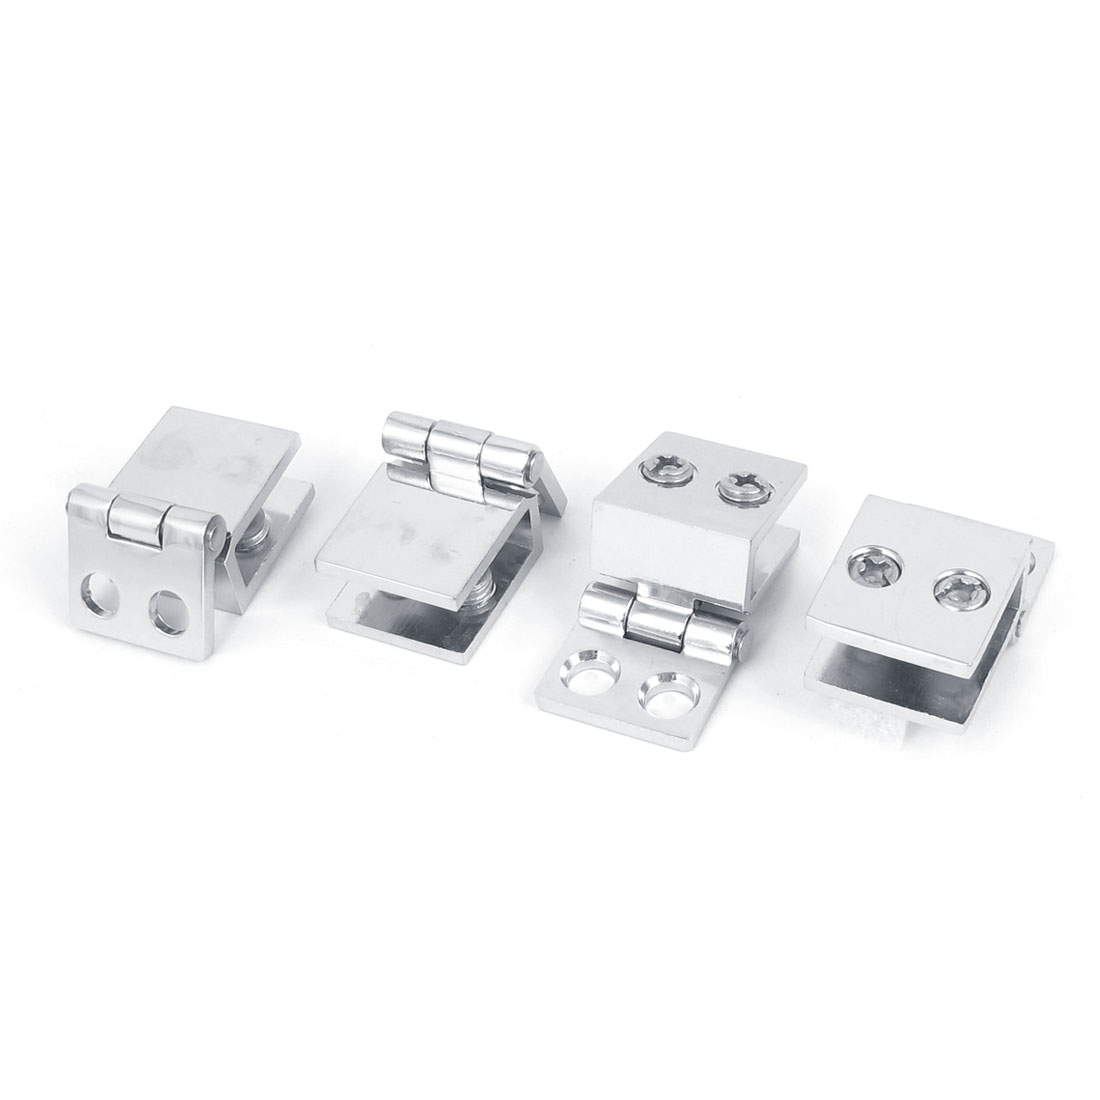 8mm Thick 90 Degree Alloy Bathroom Glass Clip Shelf Clamp Support Bracket 4pcs